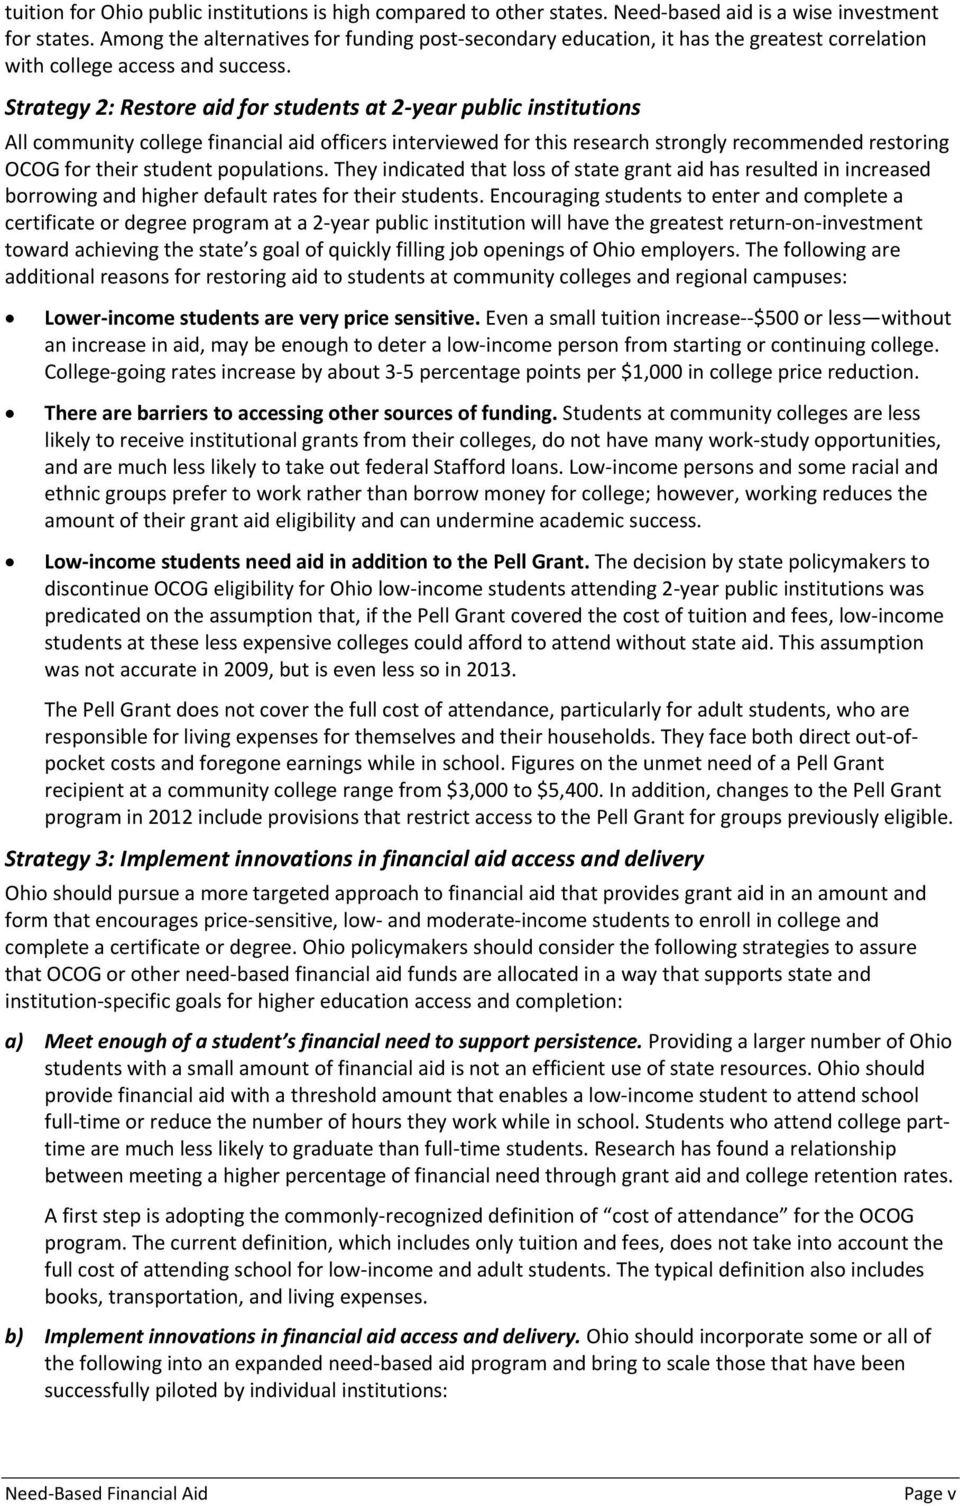 Strategy 2: Restore aid for students at 2 year public institutions All community college financial aid officers interviewed for this research strongly recommended restoring OCOG for their student